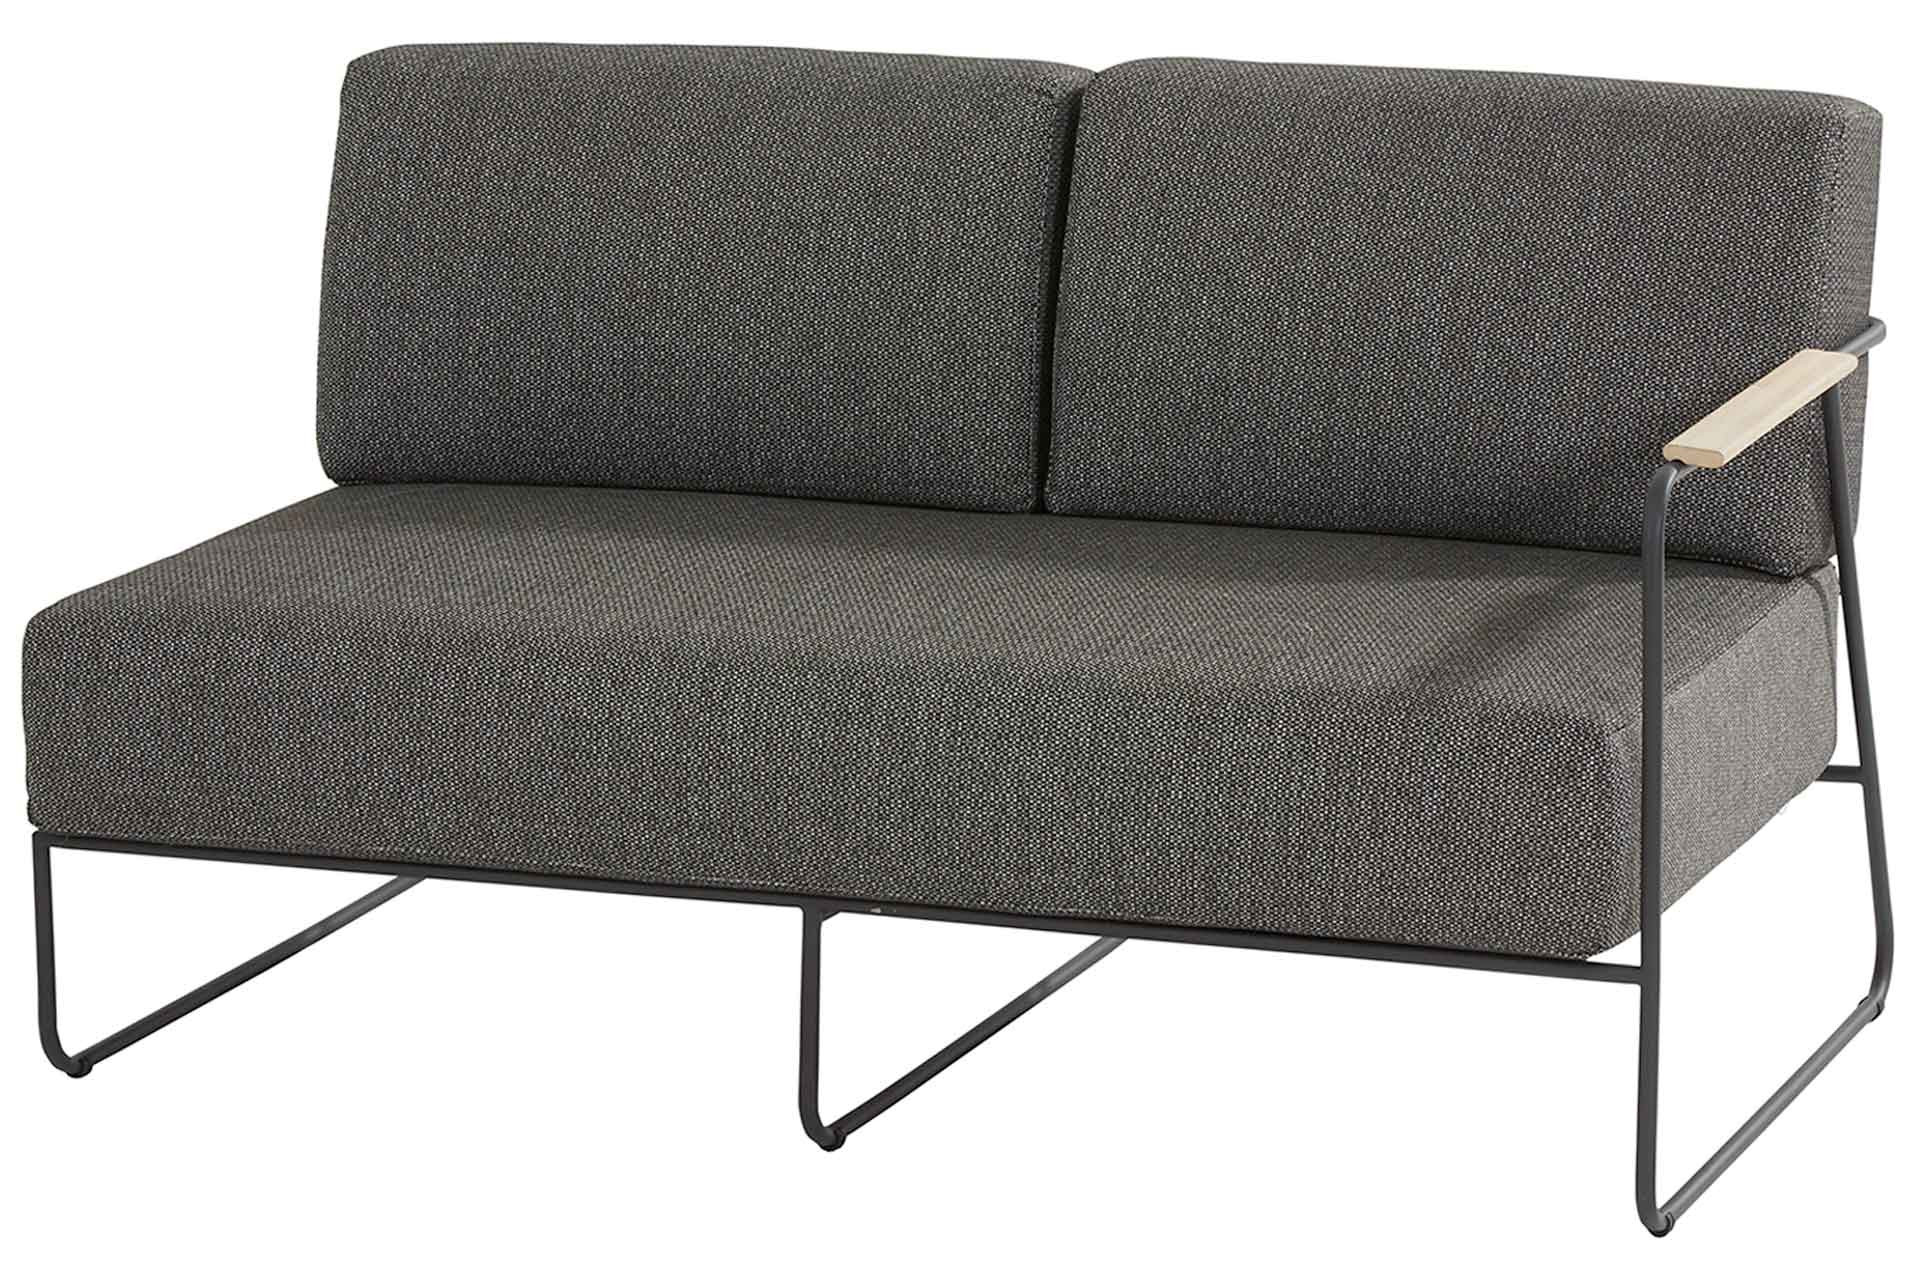 Coast modular 2 seater left arm with 4 cushions